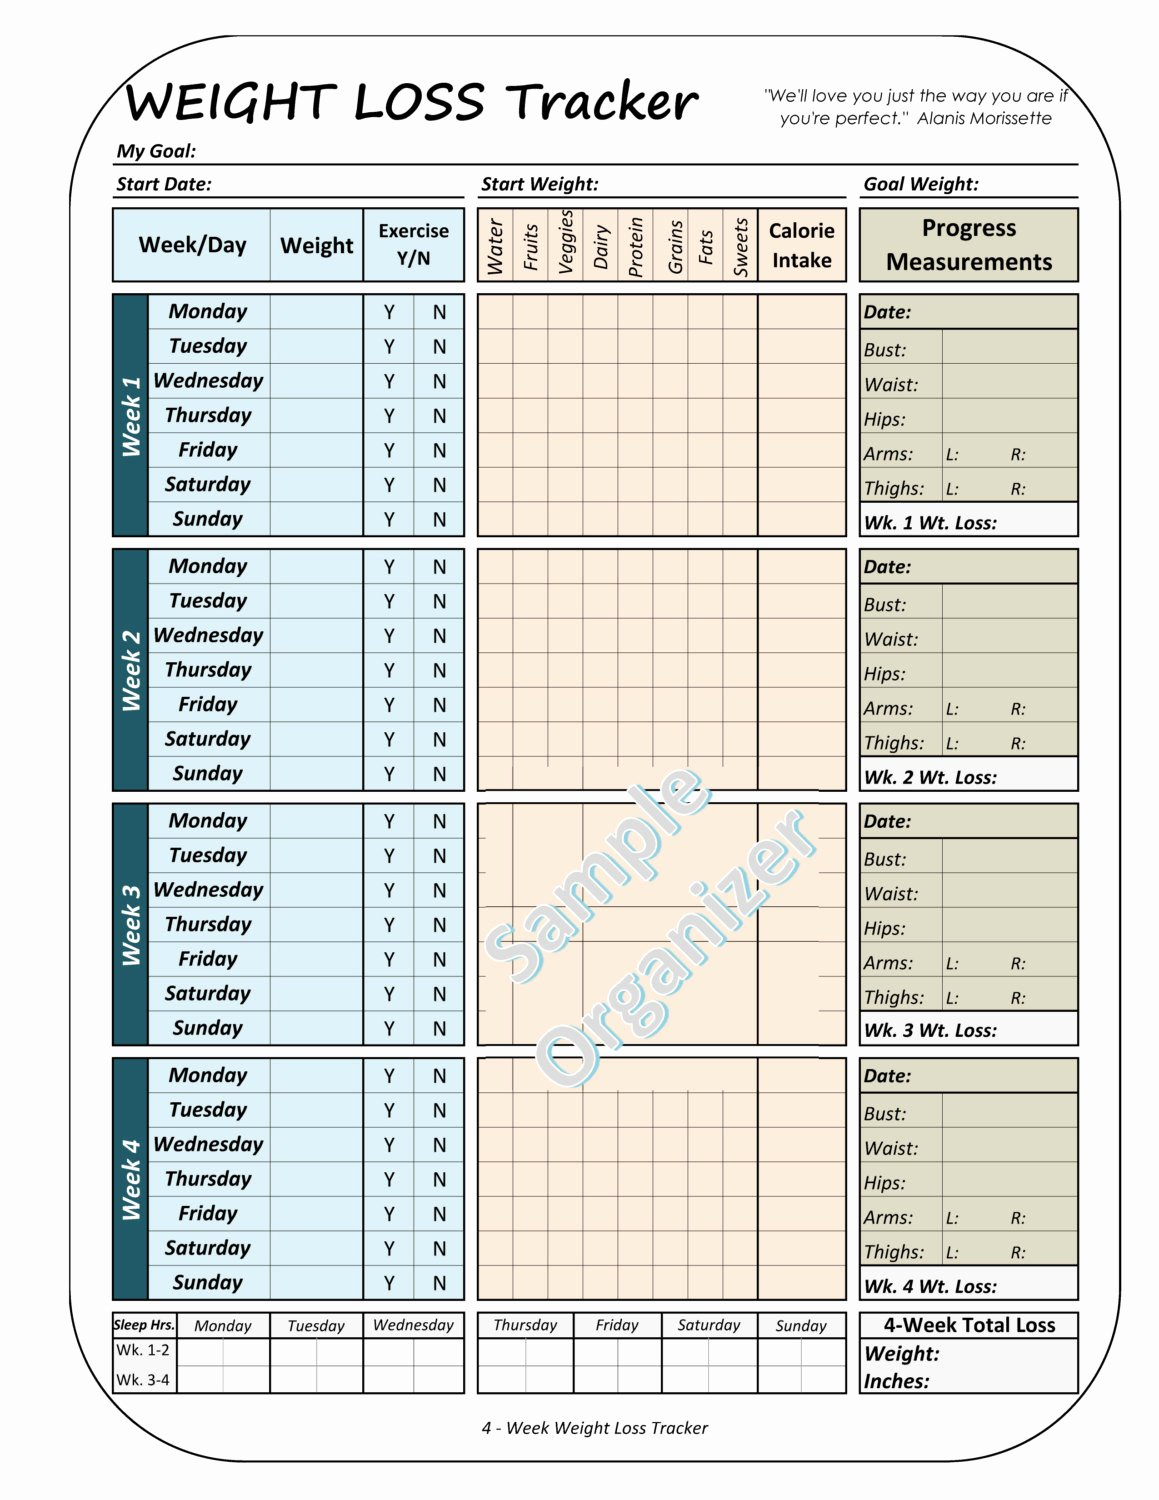 Weight Loss Tracker Template Lovely Weight Loss Tracker Printable Weight Loss Planner 4 Week